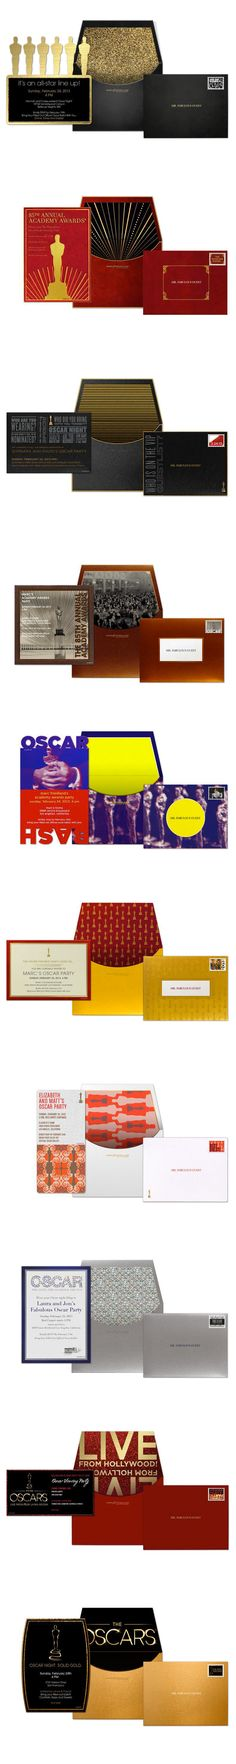 "Oscar Party Invites    ""Will the Oscar Envelopes Ever Go Digital? Designer Tells All"""